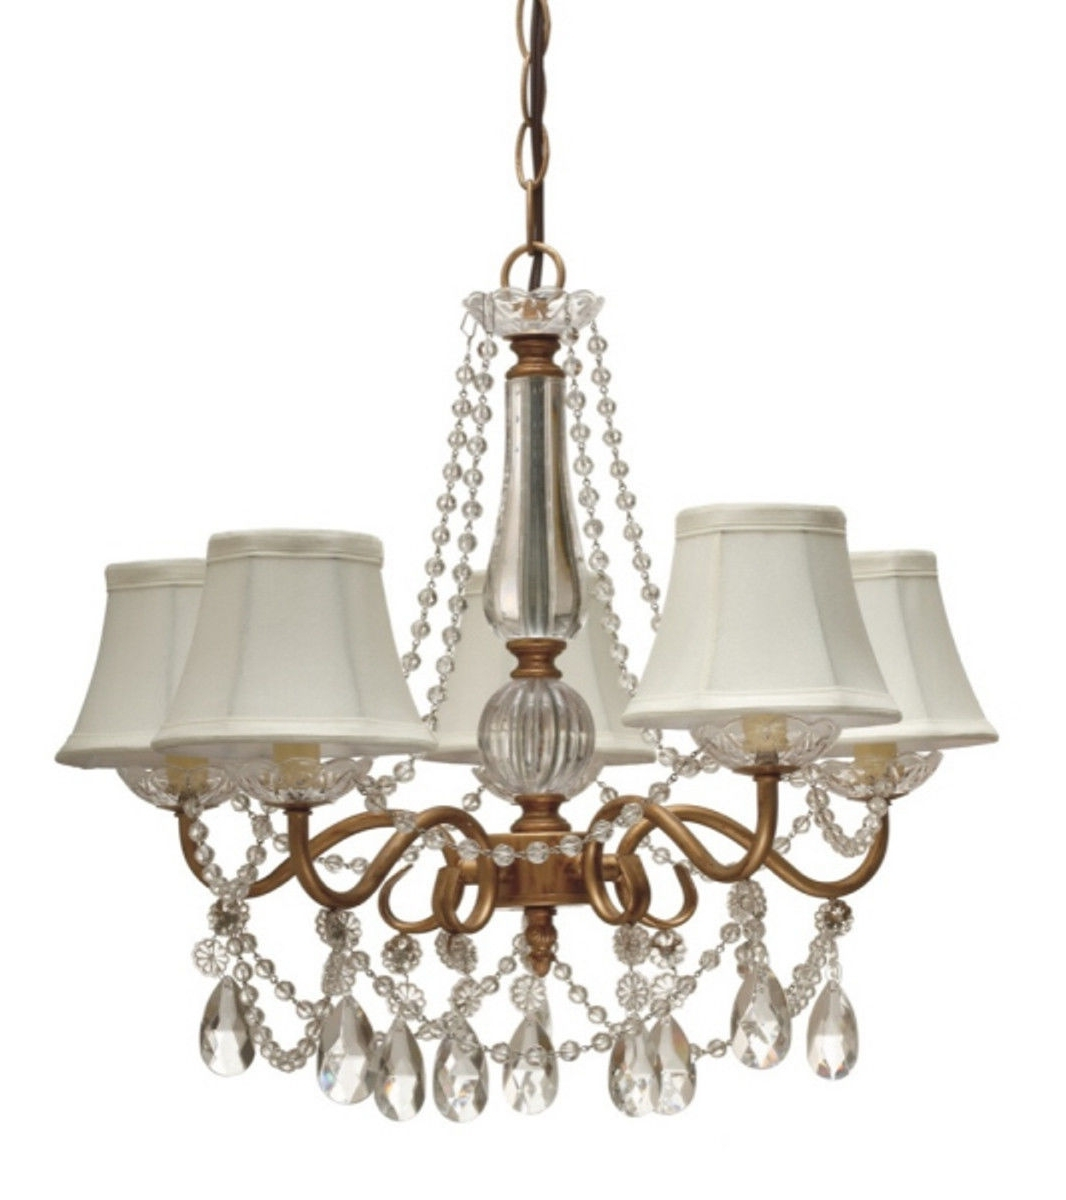 Chandelier Lampshades Regarding Well Known Enjoyable Inspiration Lamp Shades With Crystals Modern Ceiling Club (View 6 of 15)